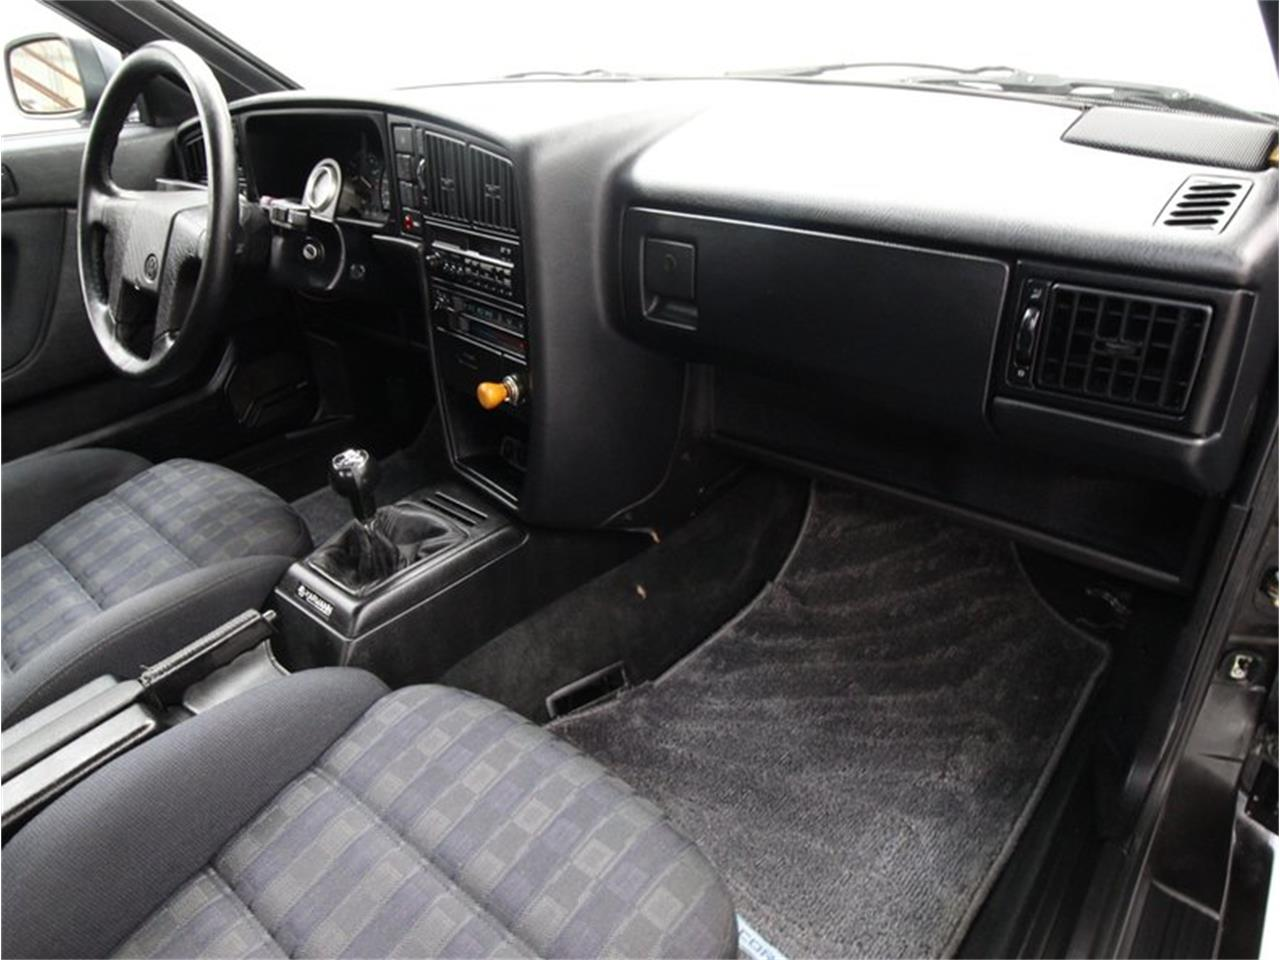 1990 Volkswagen Coupe (CC-1378194) for sale in Christiansburg, Virginia